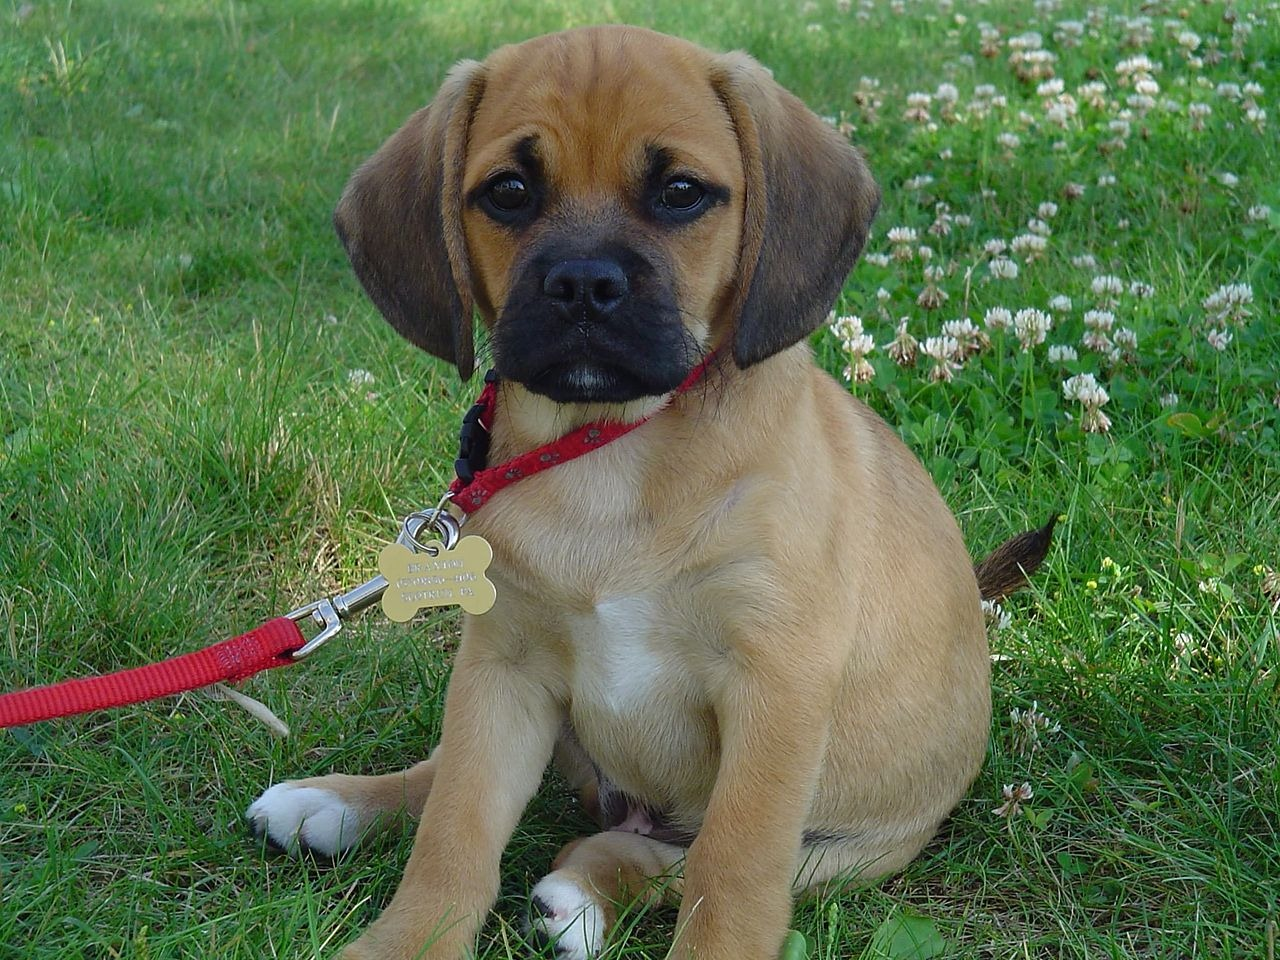 Finally, check out this adorable puggle puppy. Adorable isn't he?